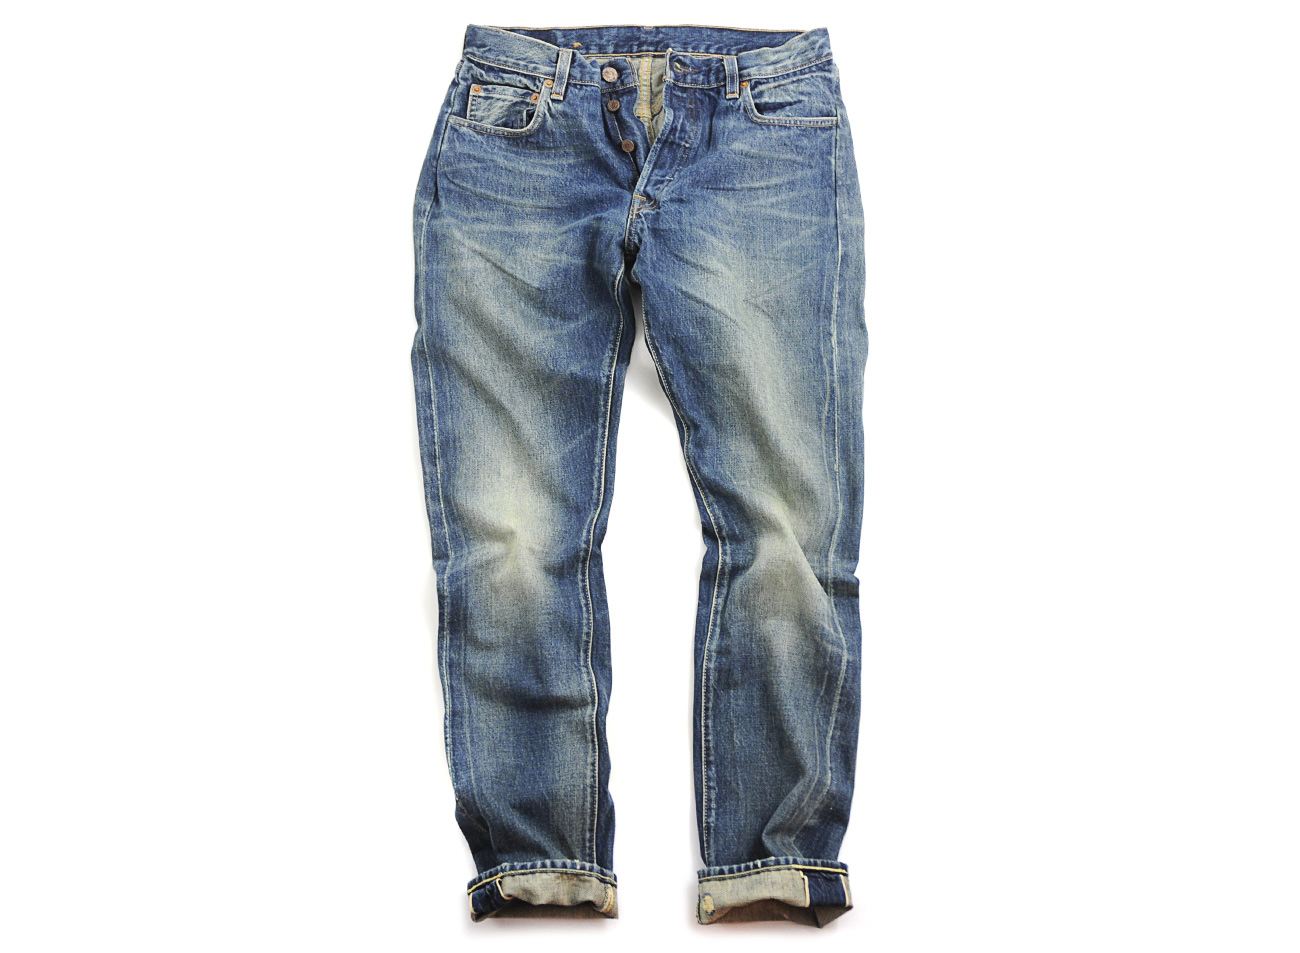 levi 39 s levis vintage 501 jeans customized in blue for men red lyst. Black Bedroom Furniture Sets. Home Design Ideas